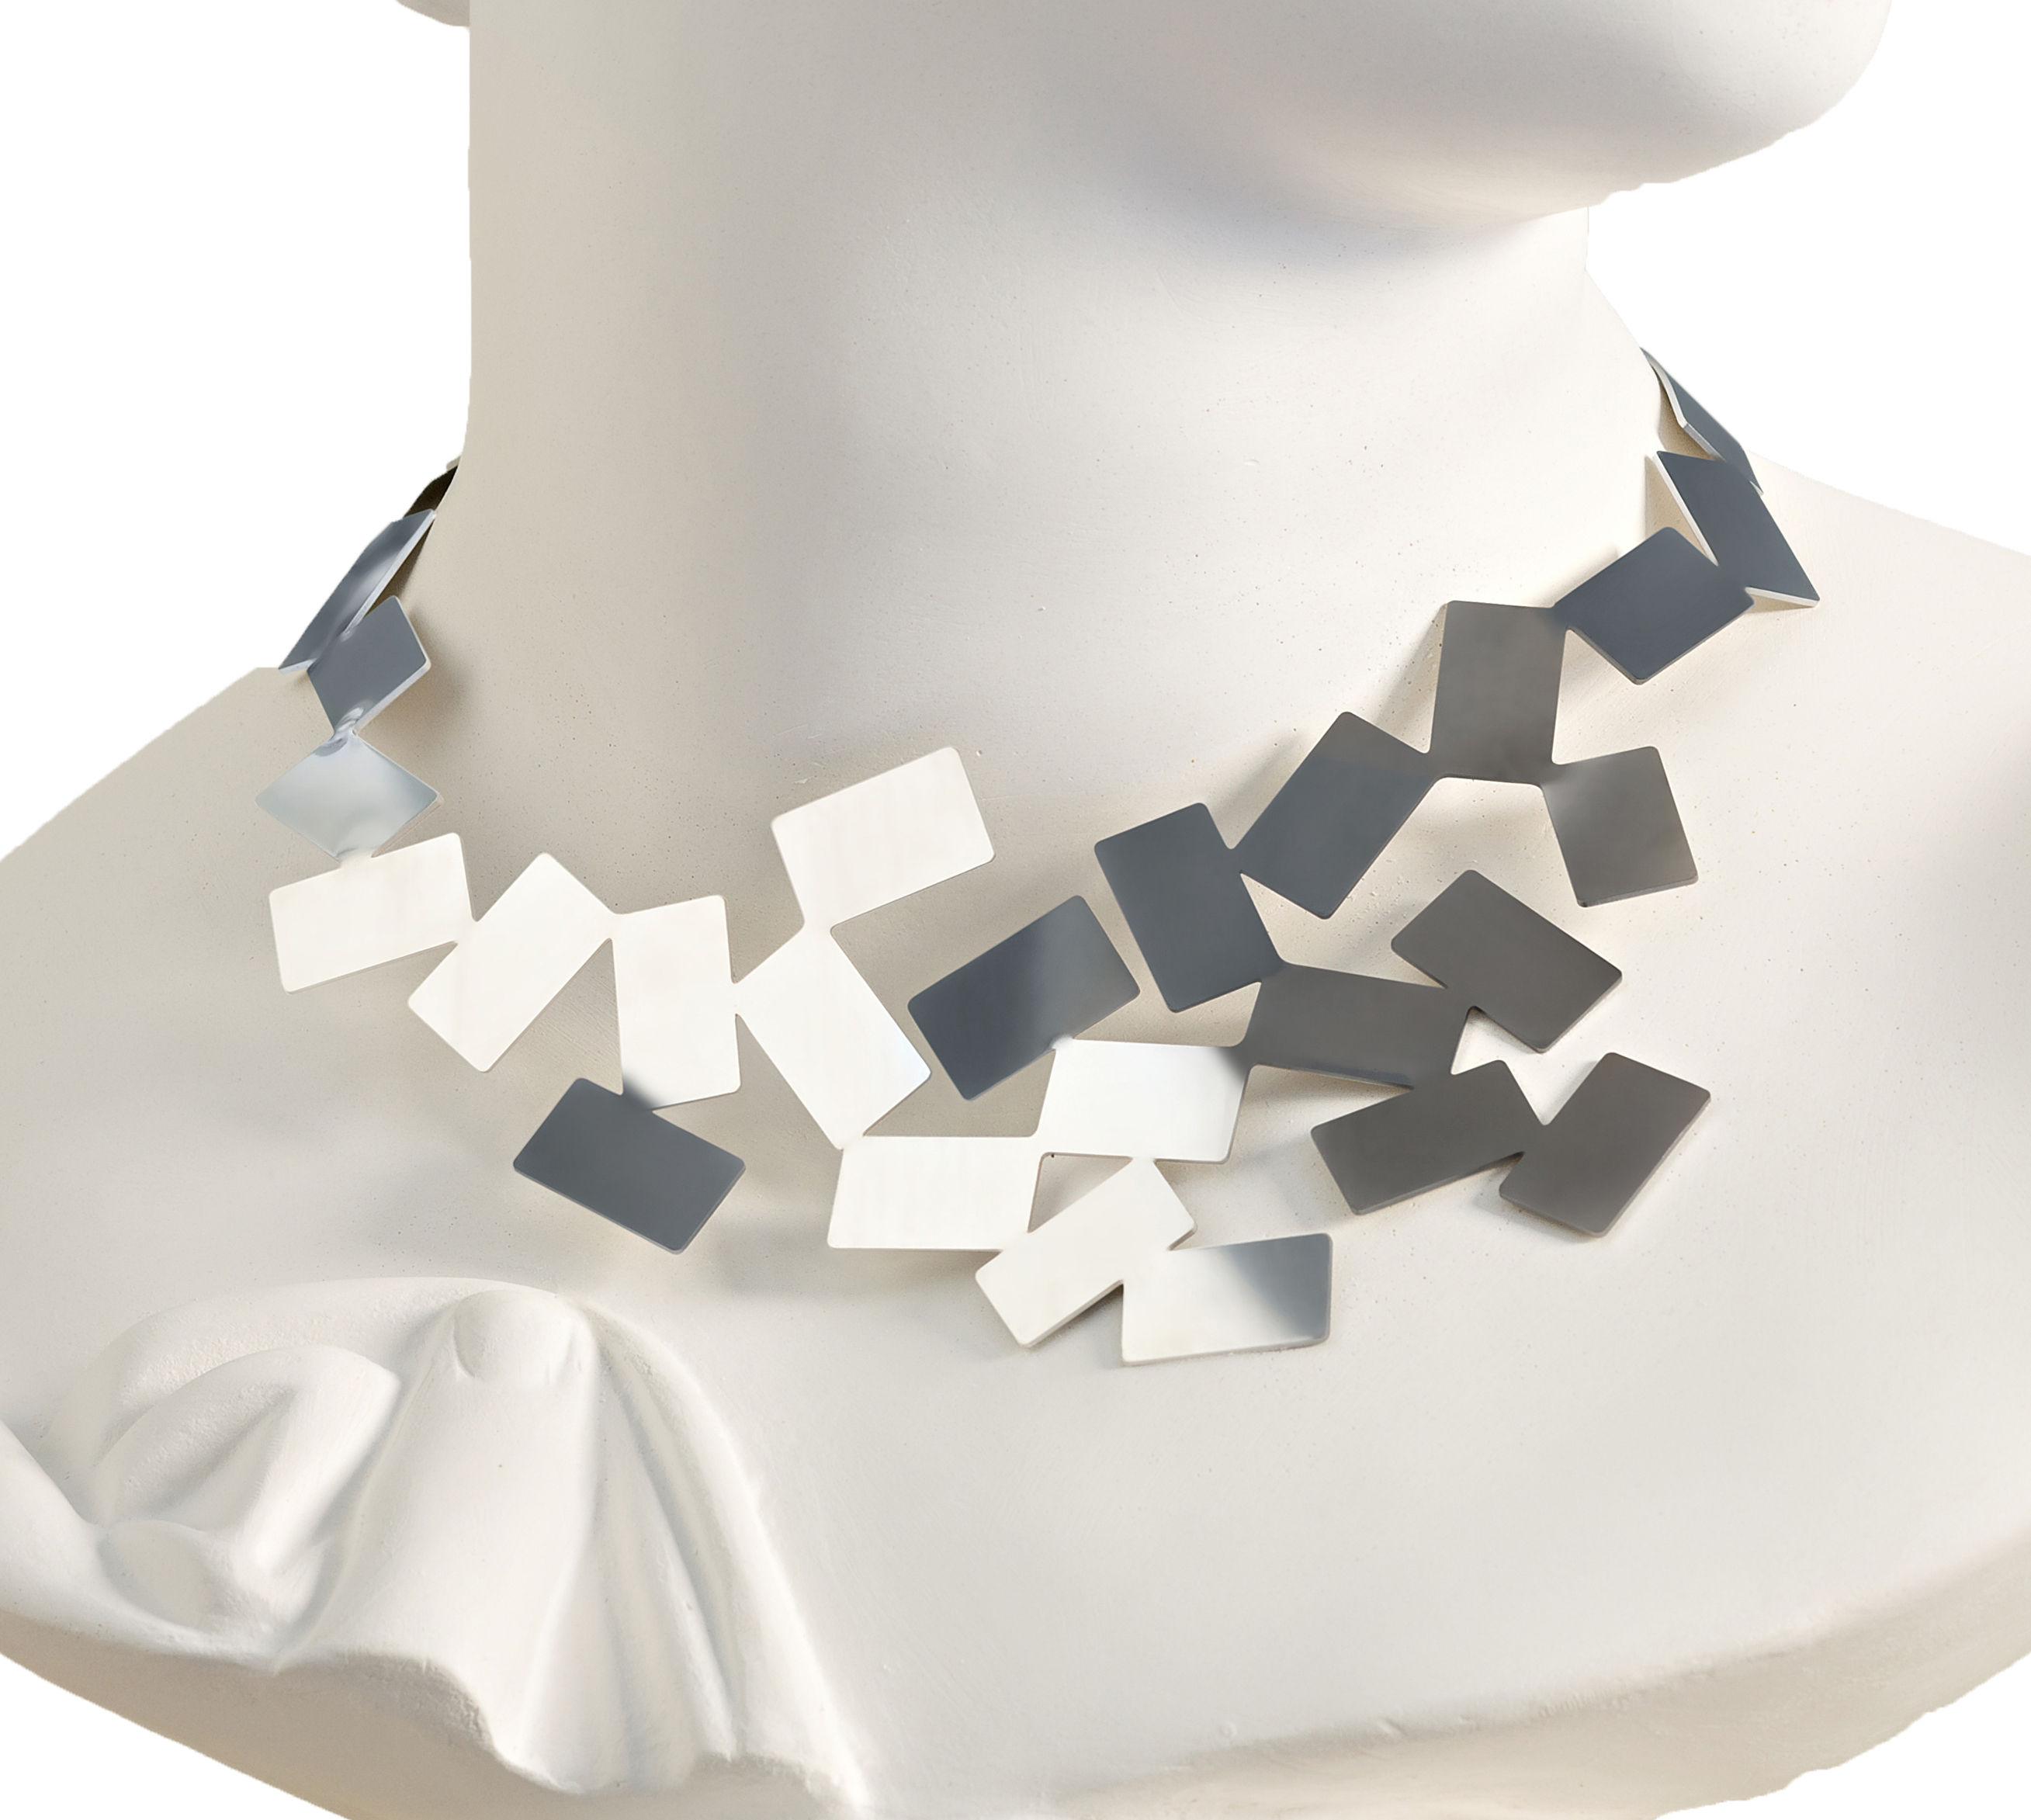 Accessories -  Jewellery - Fiato sul collo Necklace - Necklace by Alessi - Mirror polished steel - Glossy stainless steel